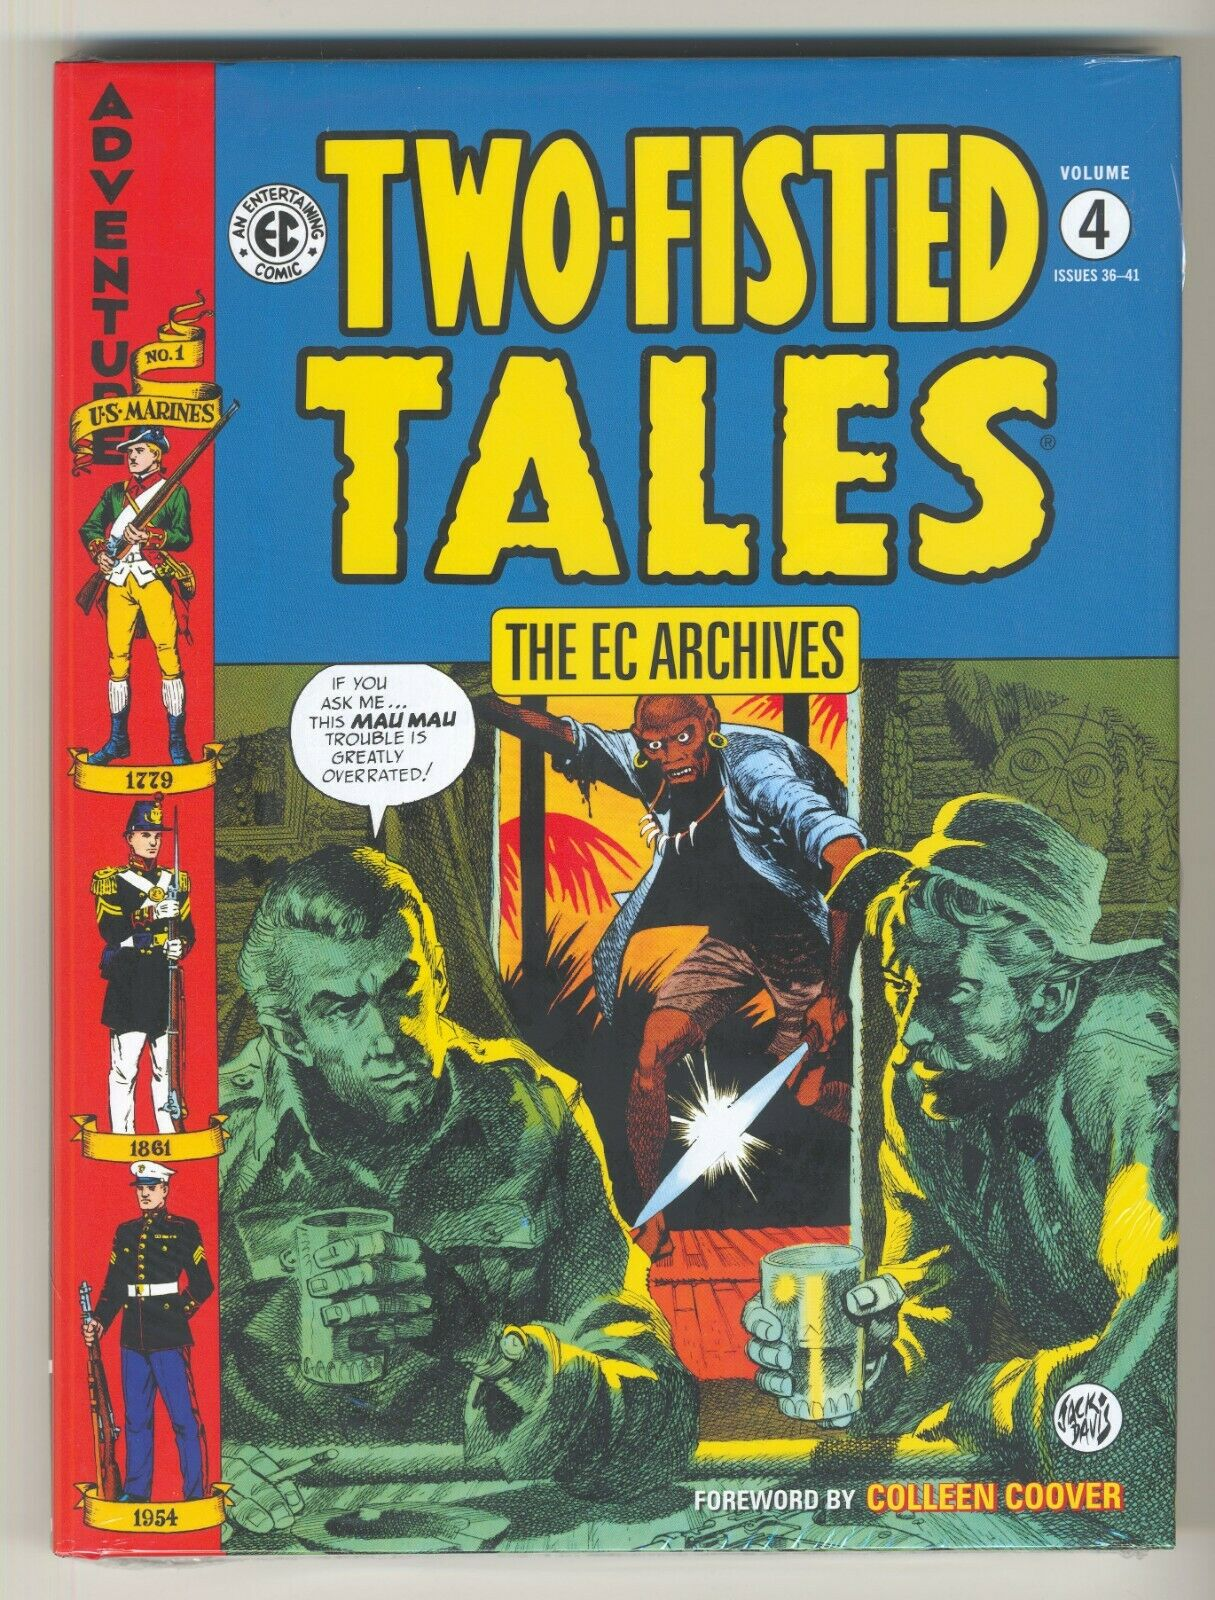 ISBN 9781506708492 product image for Ec Archives: Two-fisted Tales, Vol. 4 [hc] | upcitemdb.com